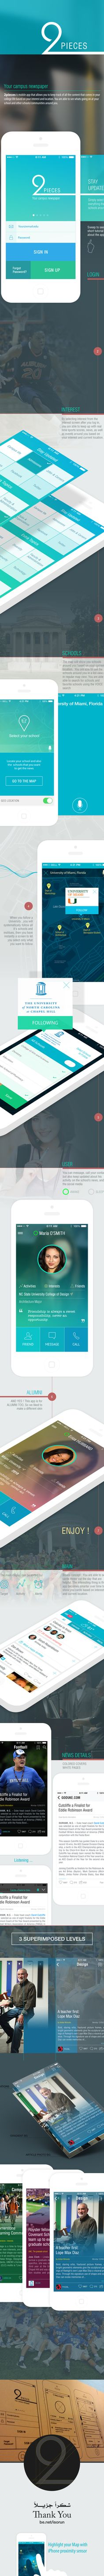 Social Student App IPHONE/ANDROID by Yasser Achachi, via Behance